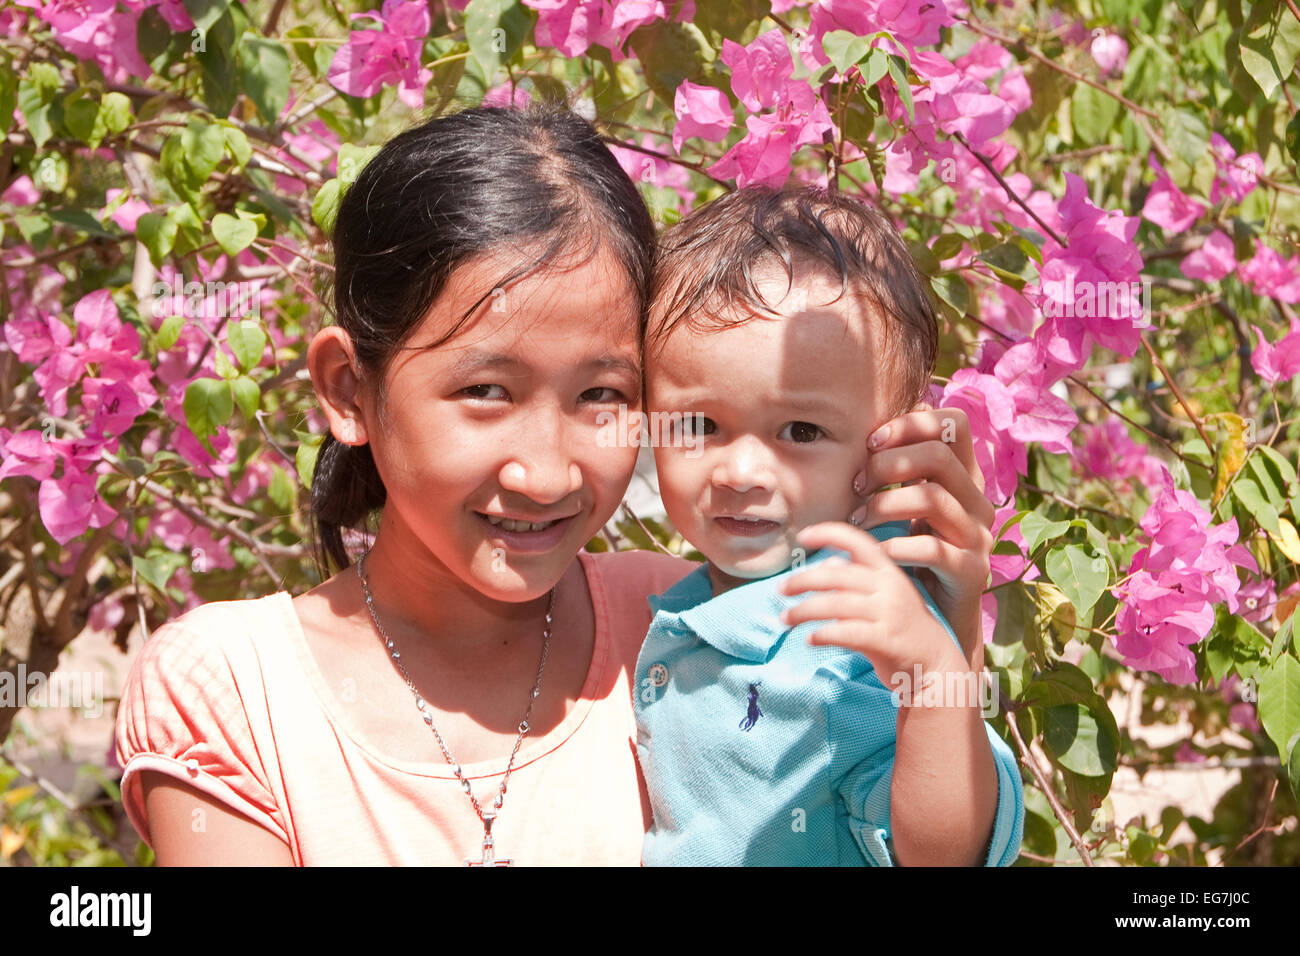 Young girl with small child on the arm, Phu Quoc, Vietnam, Asia Stock Photo